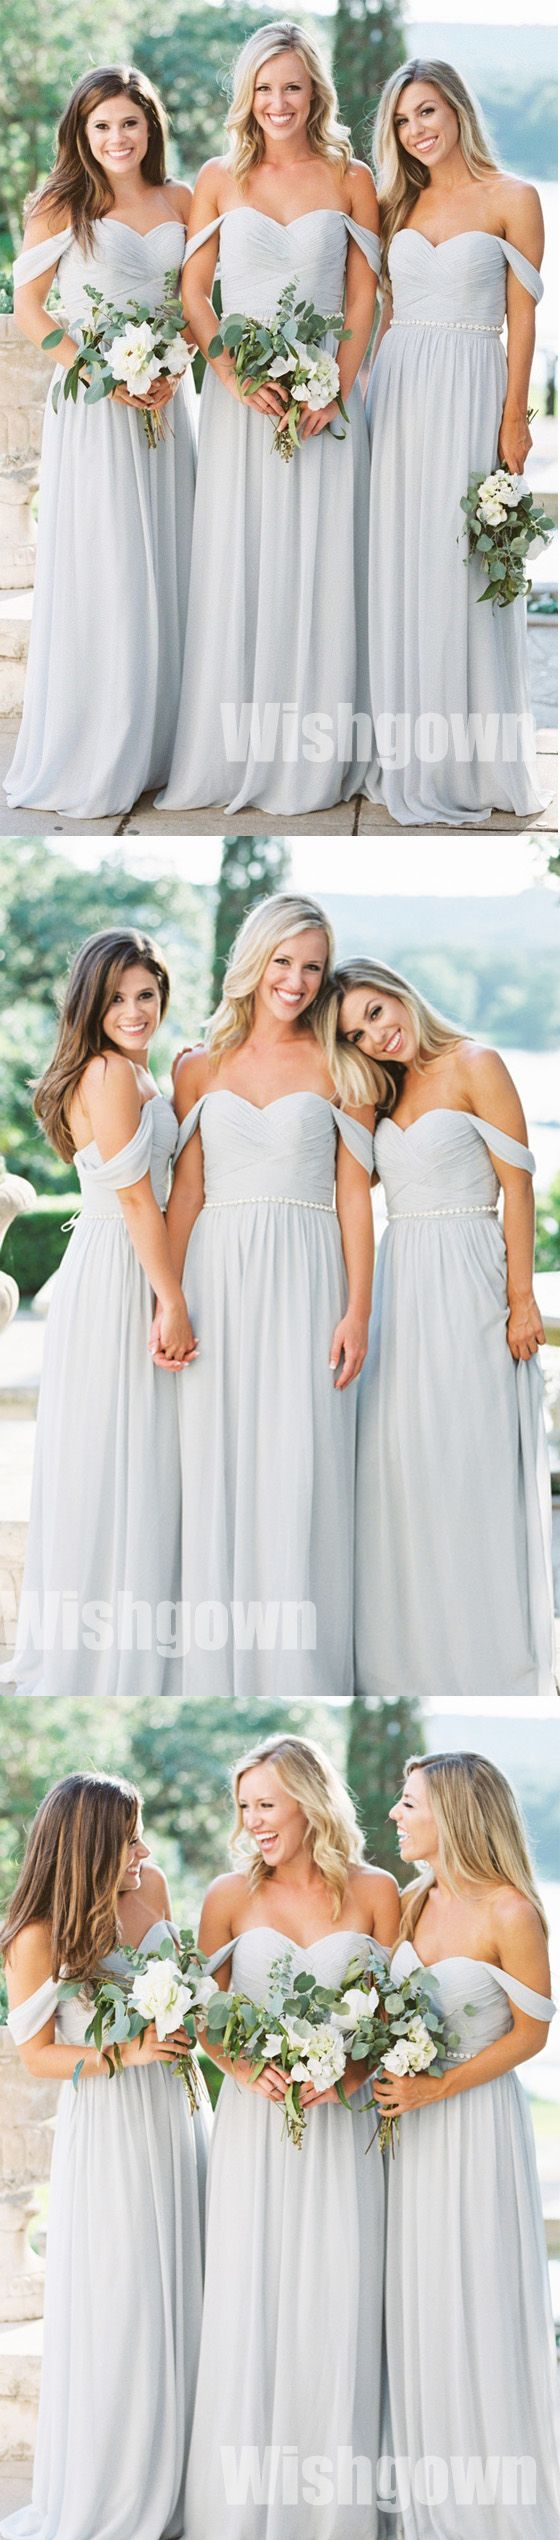 Charming Off the Shoulder Sweetheart Chiffon Long Cheap Bridesmaid Dresses, WG463 #bridesmaids #wedding #weddingpartydress